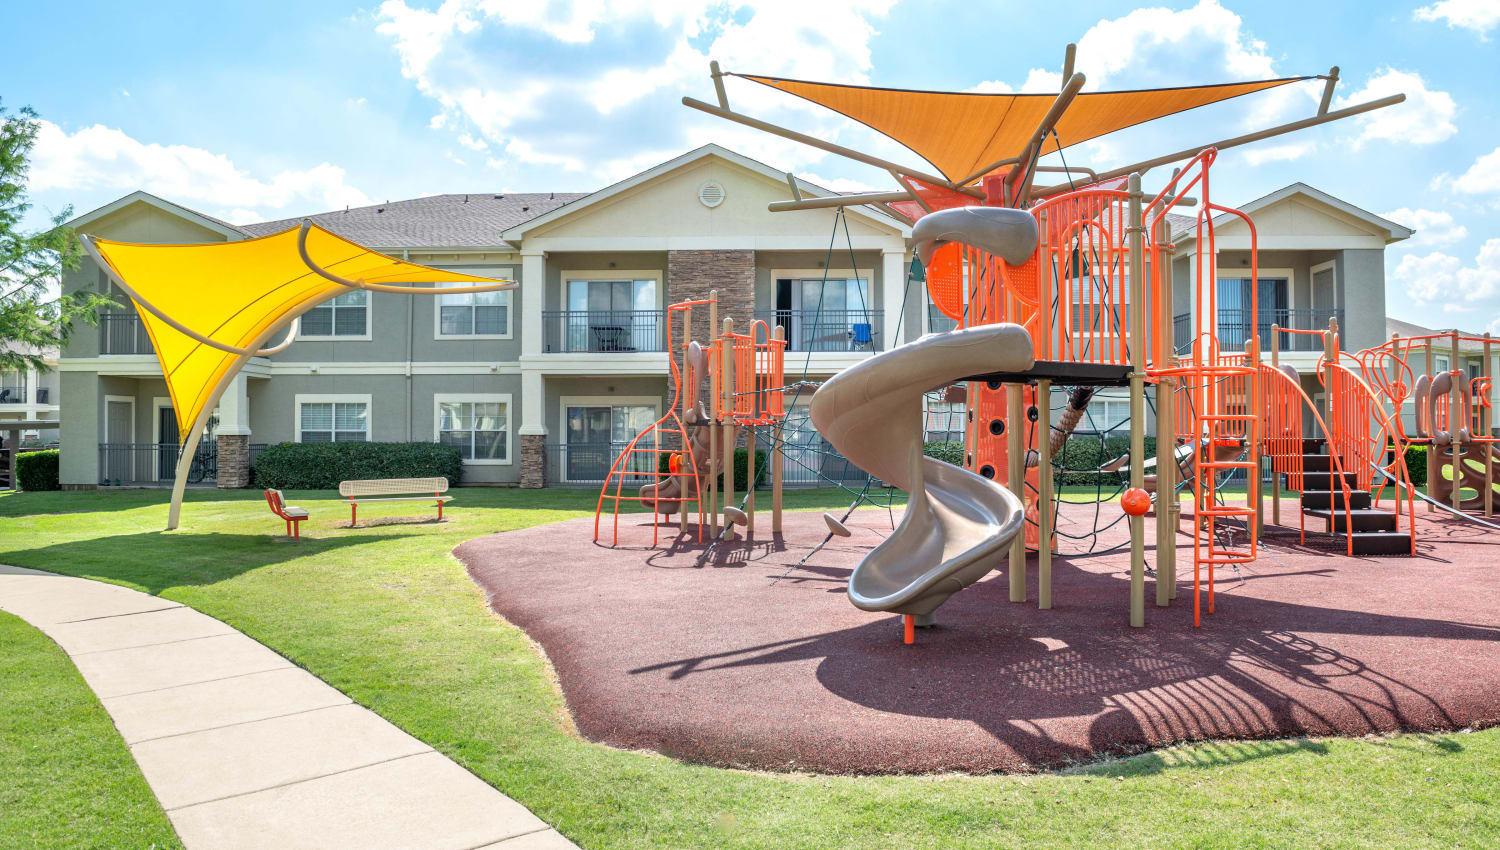 Onsite children's playground with shaded seating nearby at Olympus Stone Glen in Keller, Texas